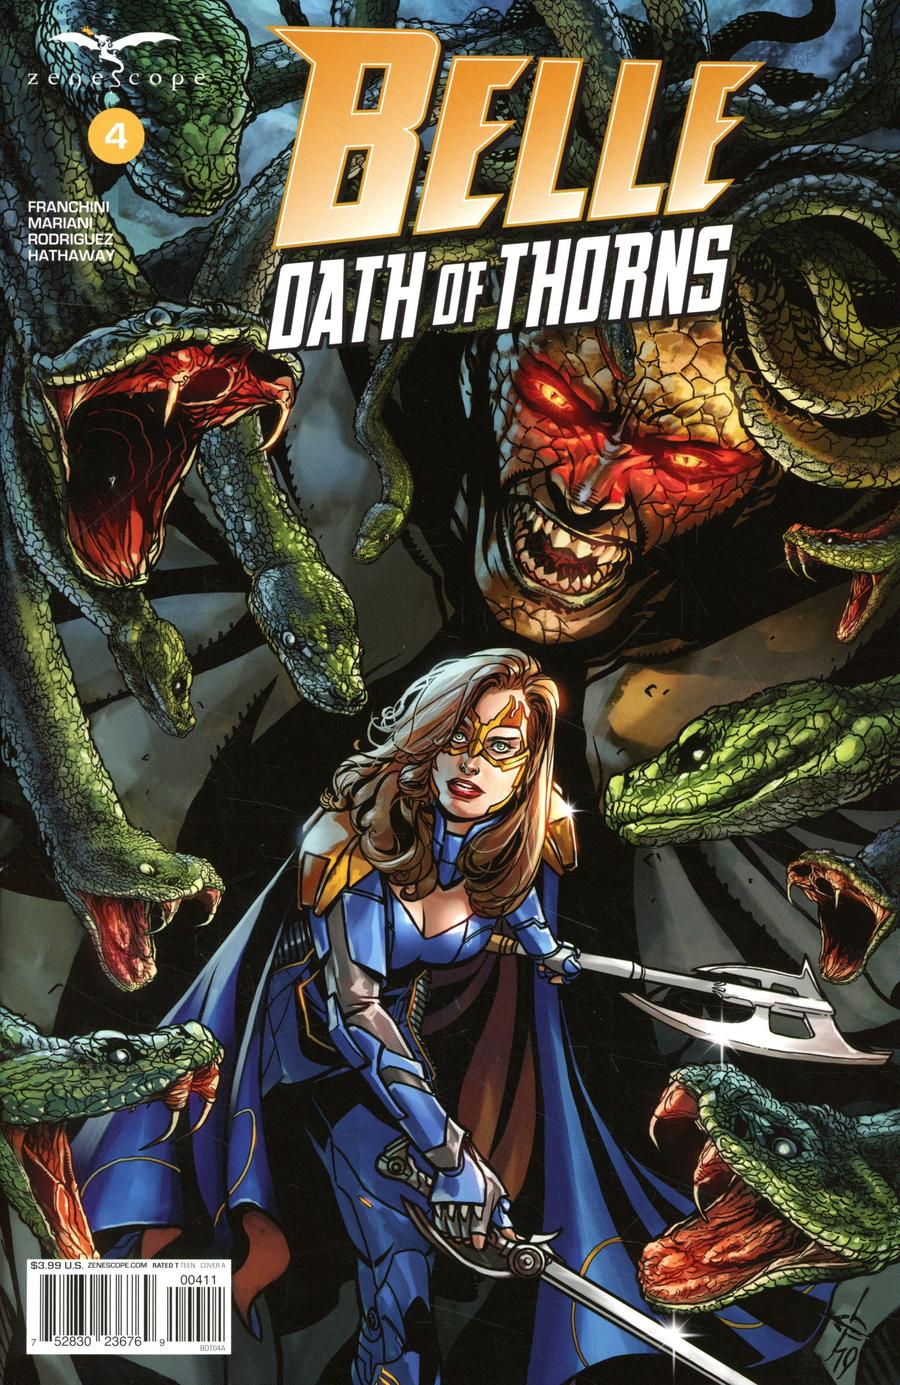 Belle: Oath Of Thorns #4 (2020)